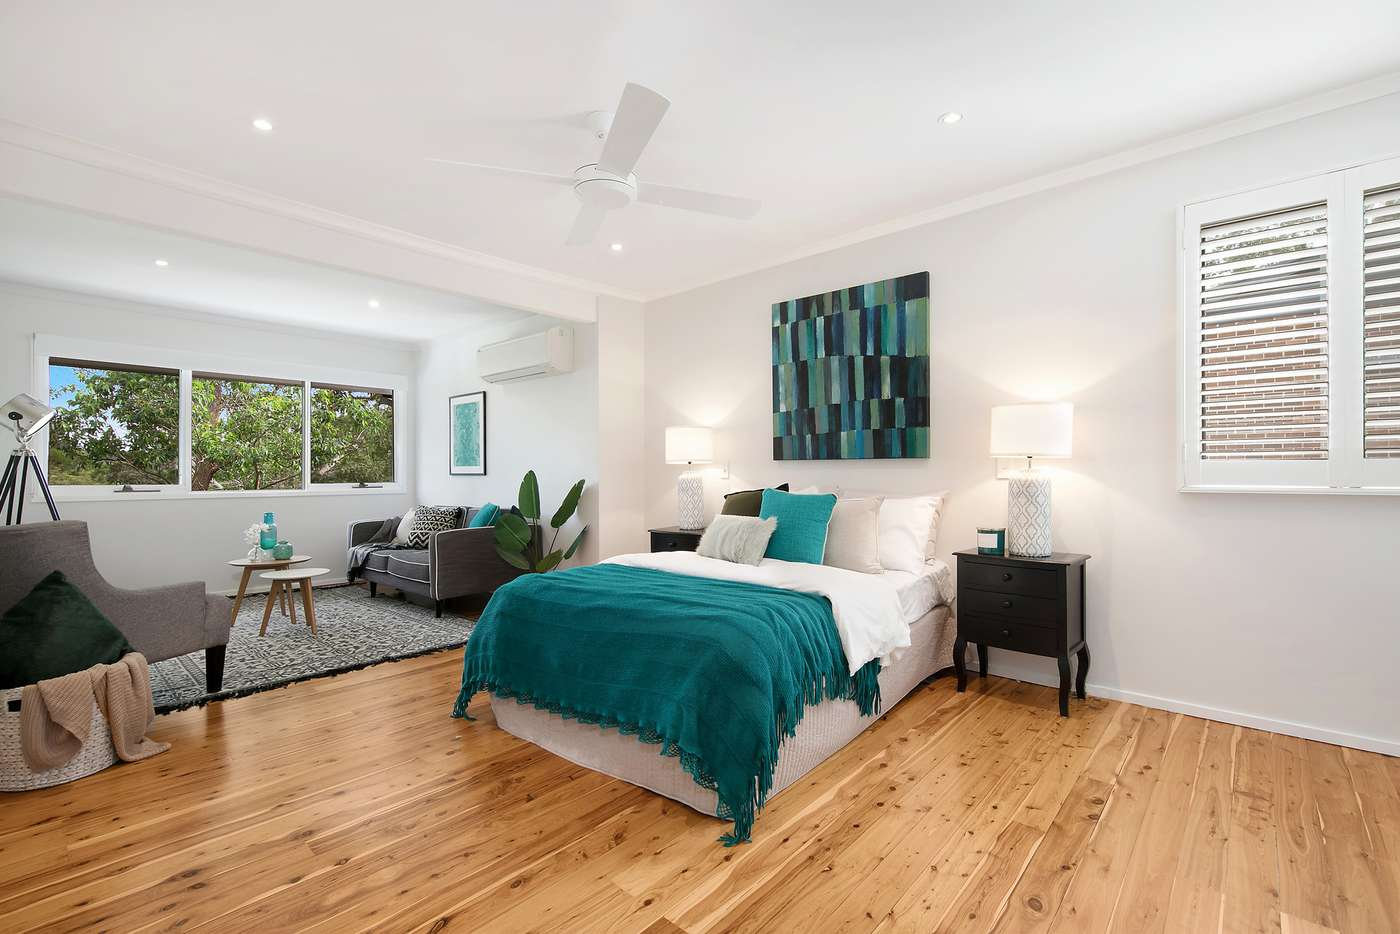 Sixth view of Homely house listing, 142 Duneba Drive, Westleigh NSW 2120